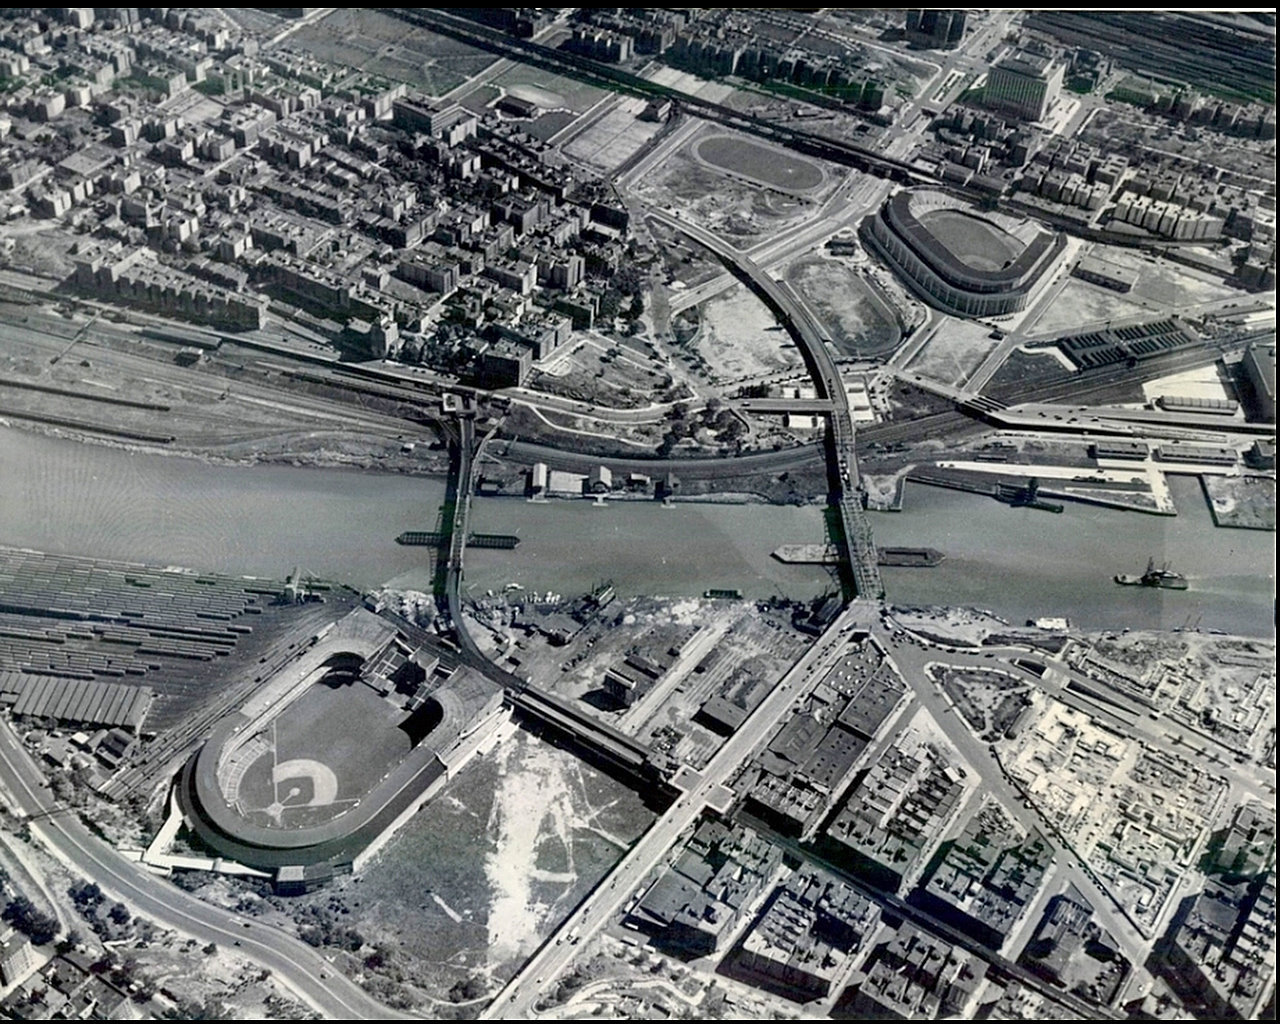 Polo Grounds and Yankee Stadium (1936)